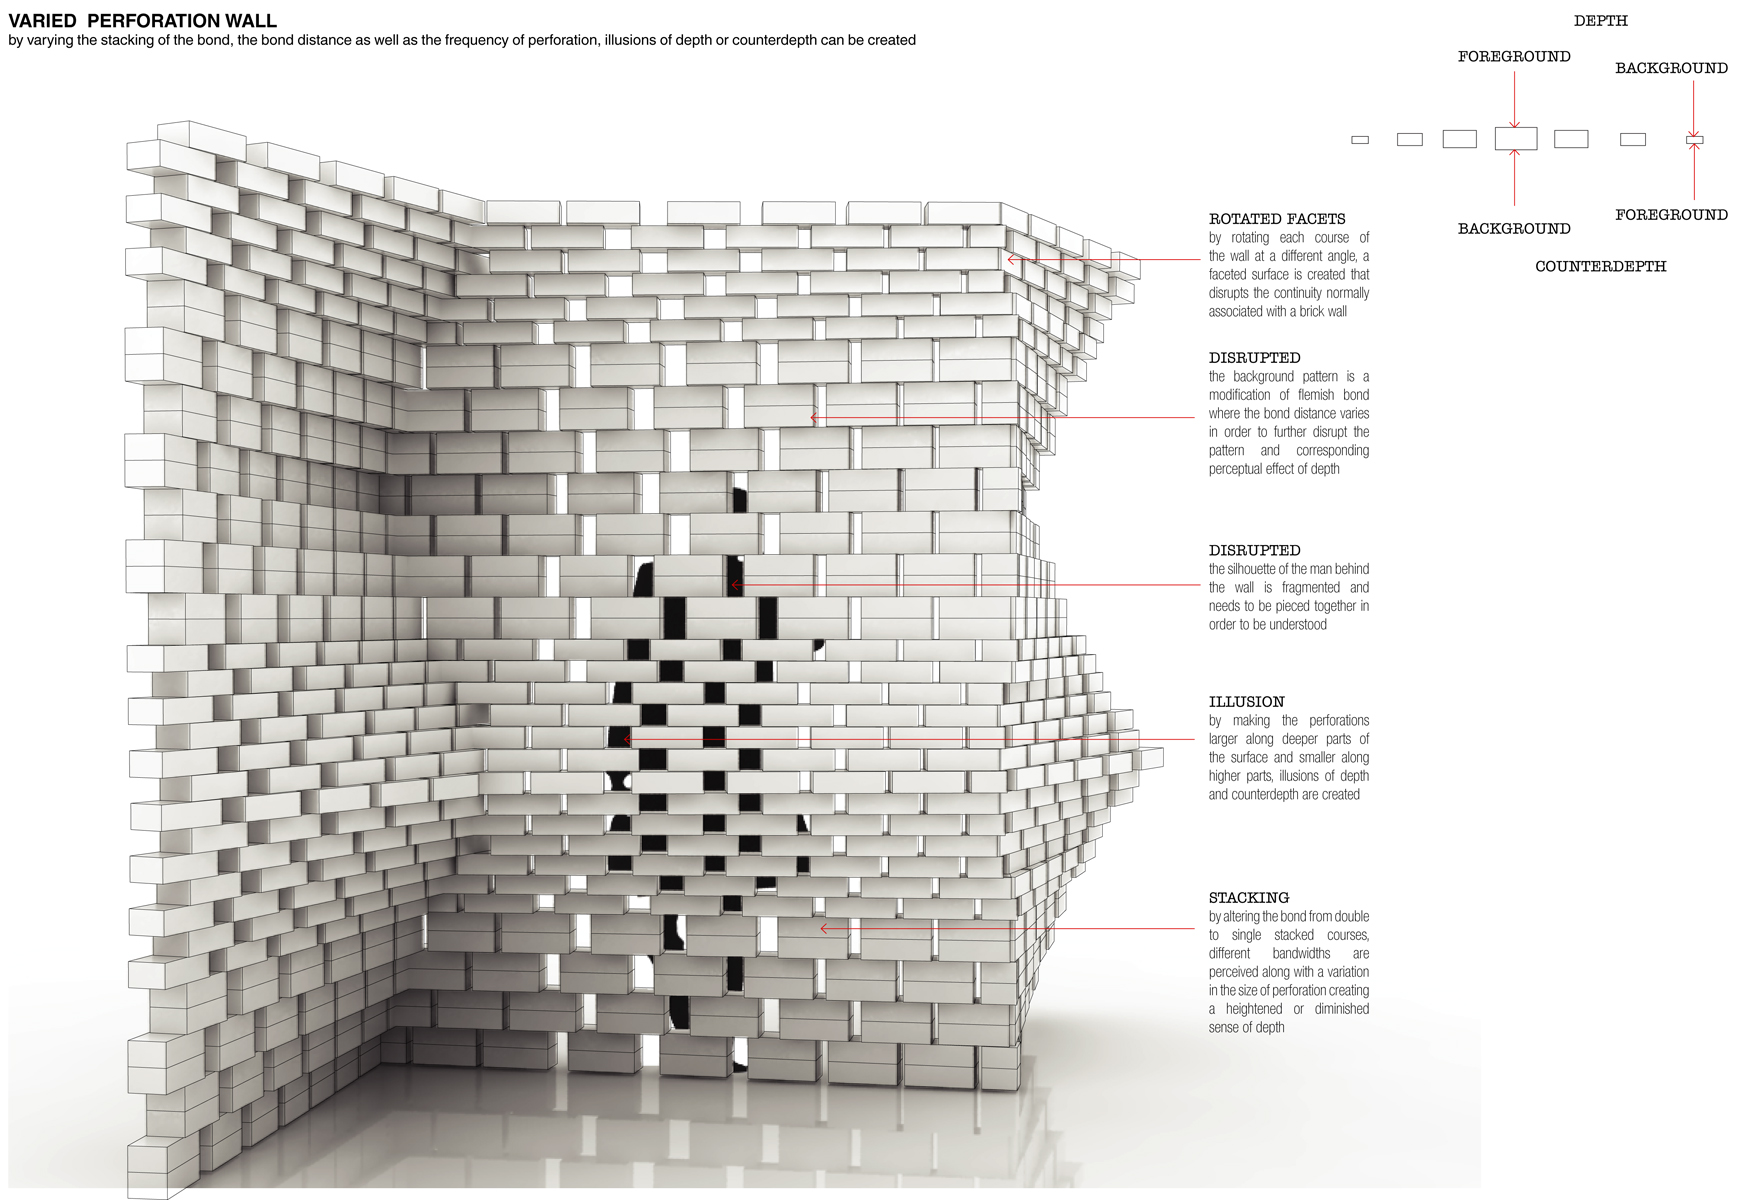 1000 images about brick on pinterest roof tiles for Perforated brick wall